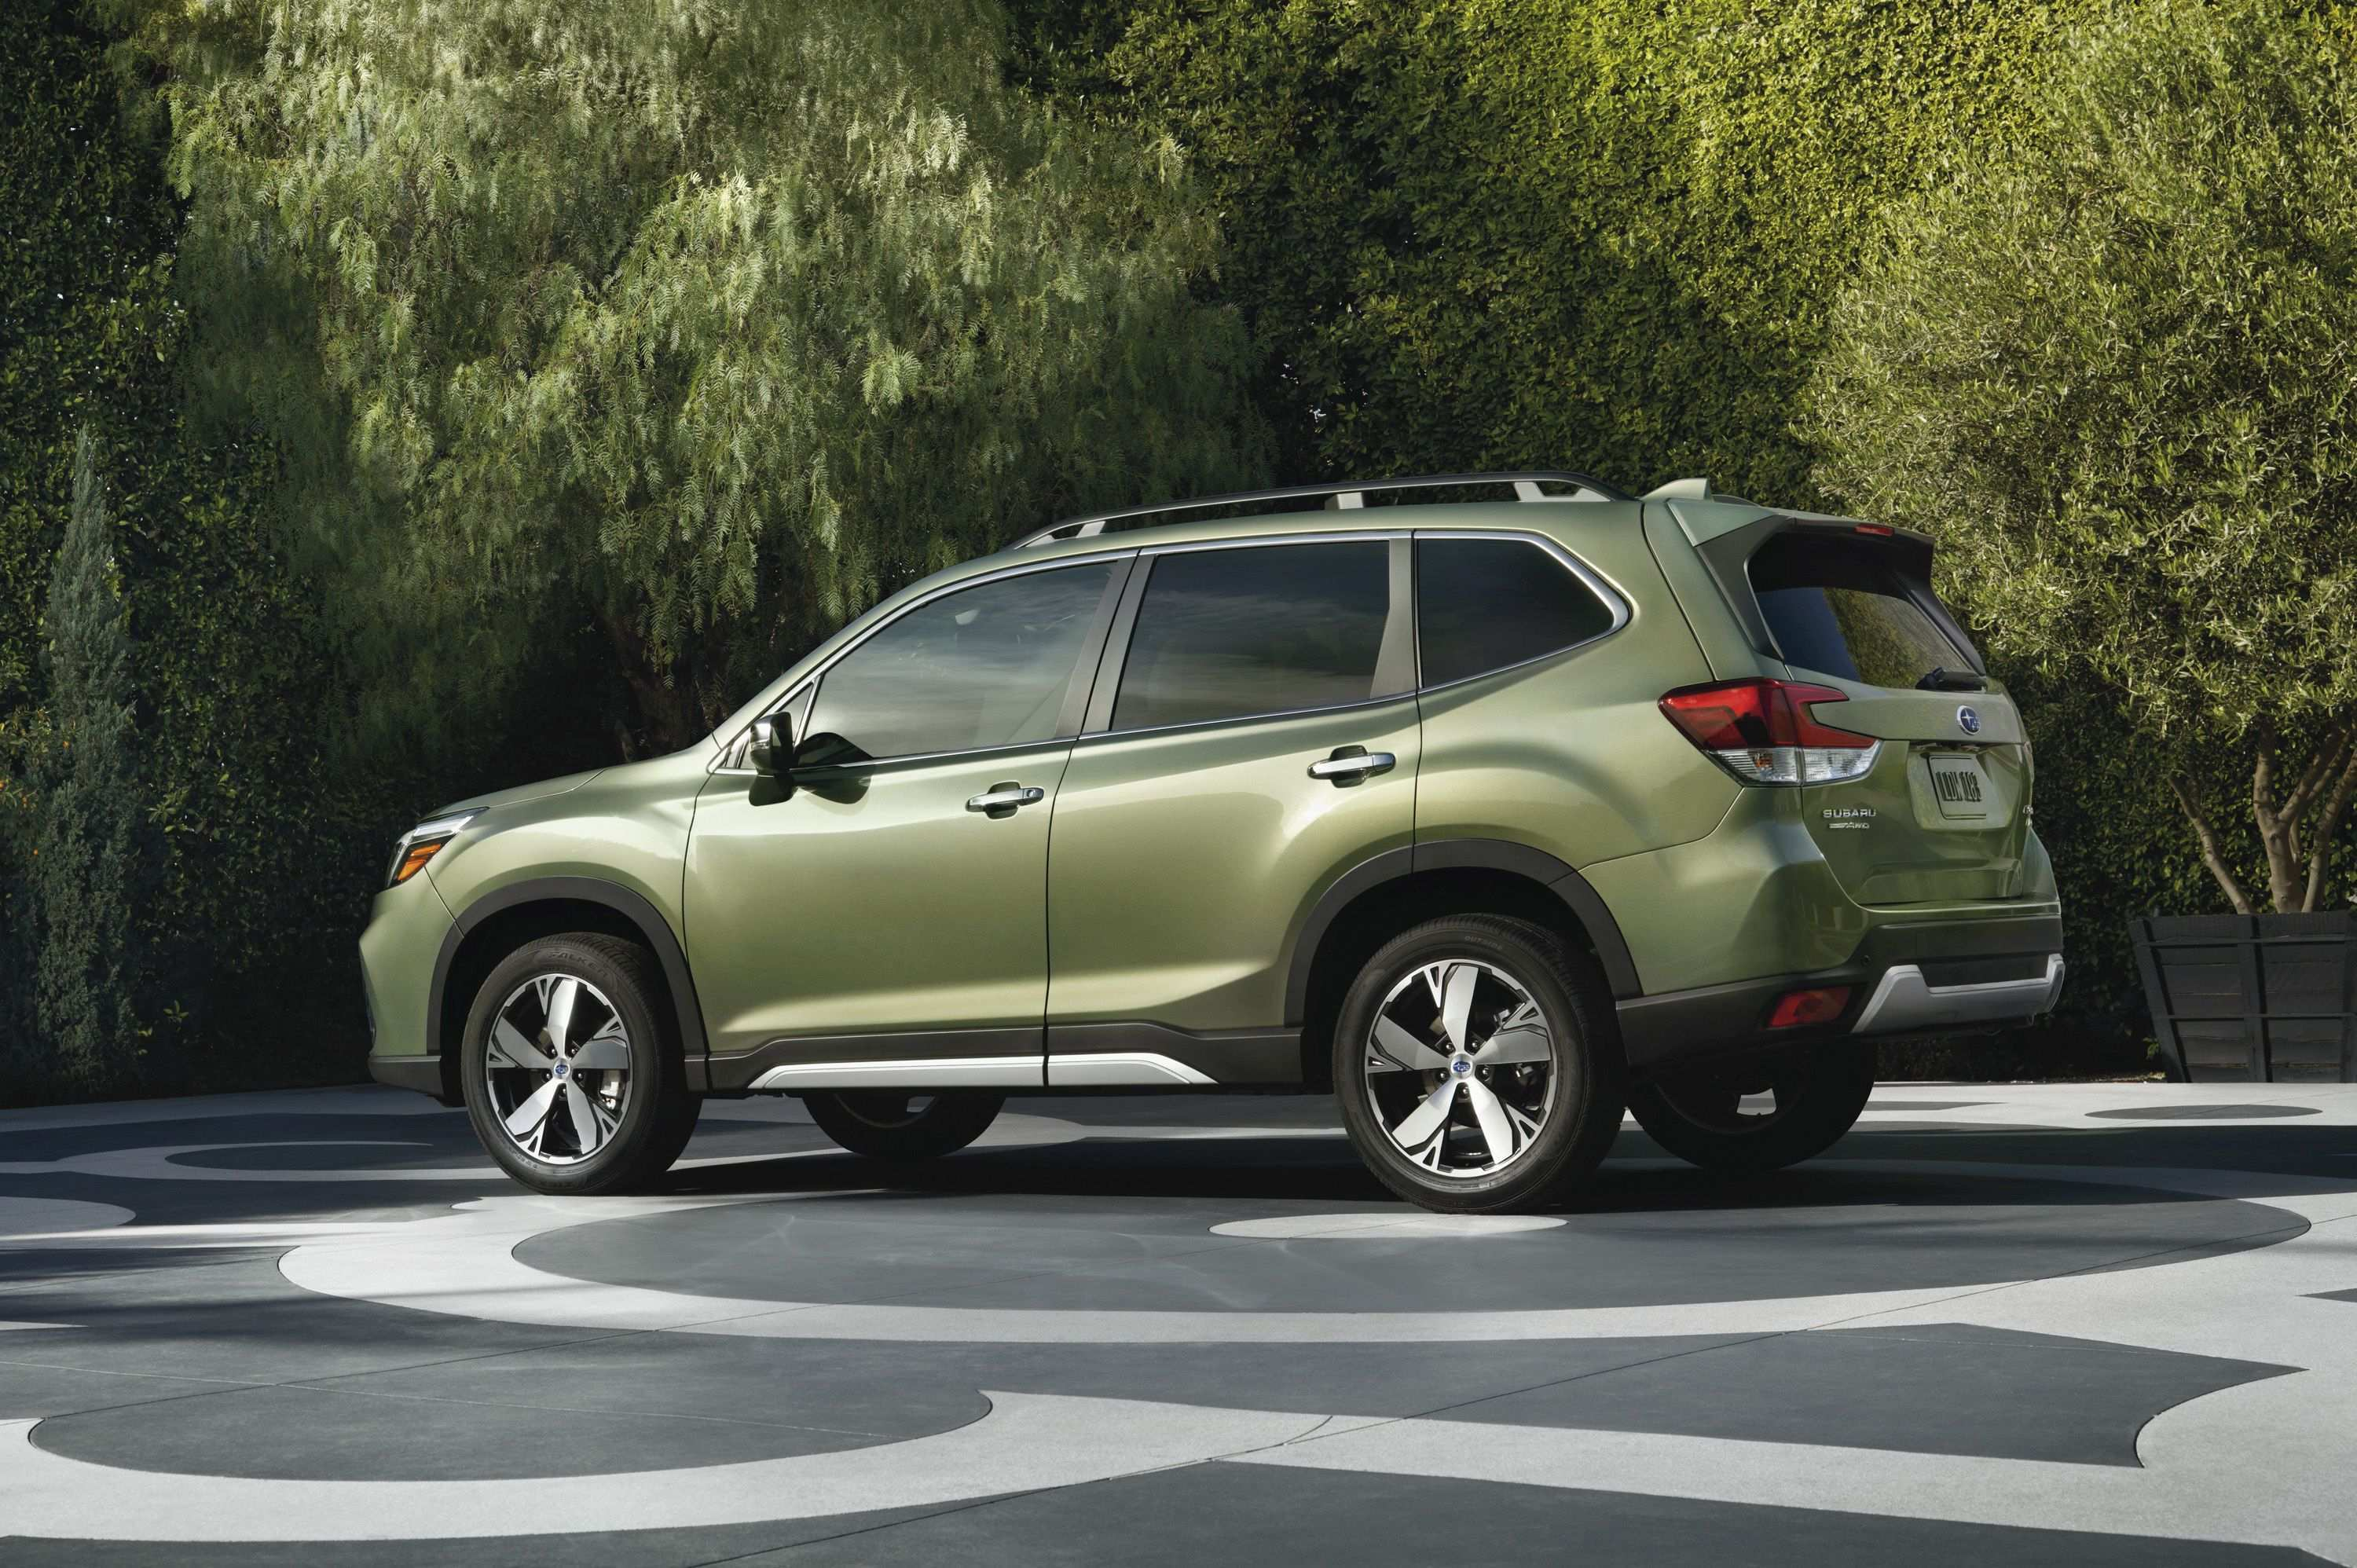 43 The Subaru Forester 2020 Dimensions Specs and Review with Subaru Forester 2020 Dimensions